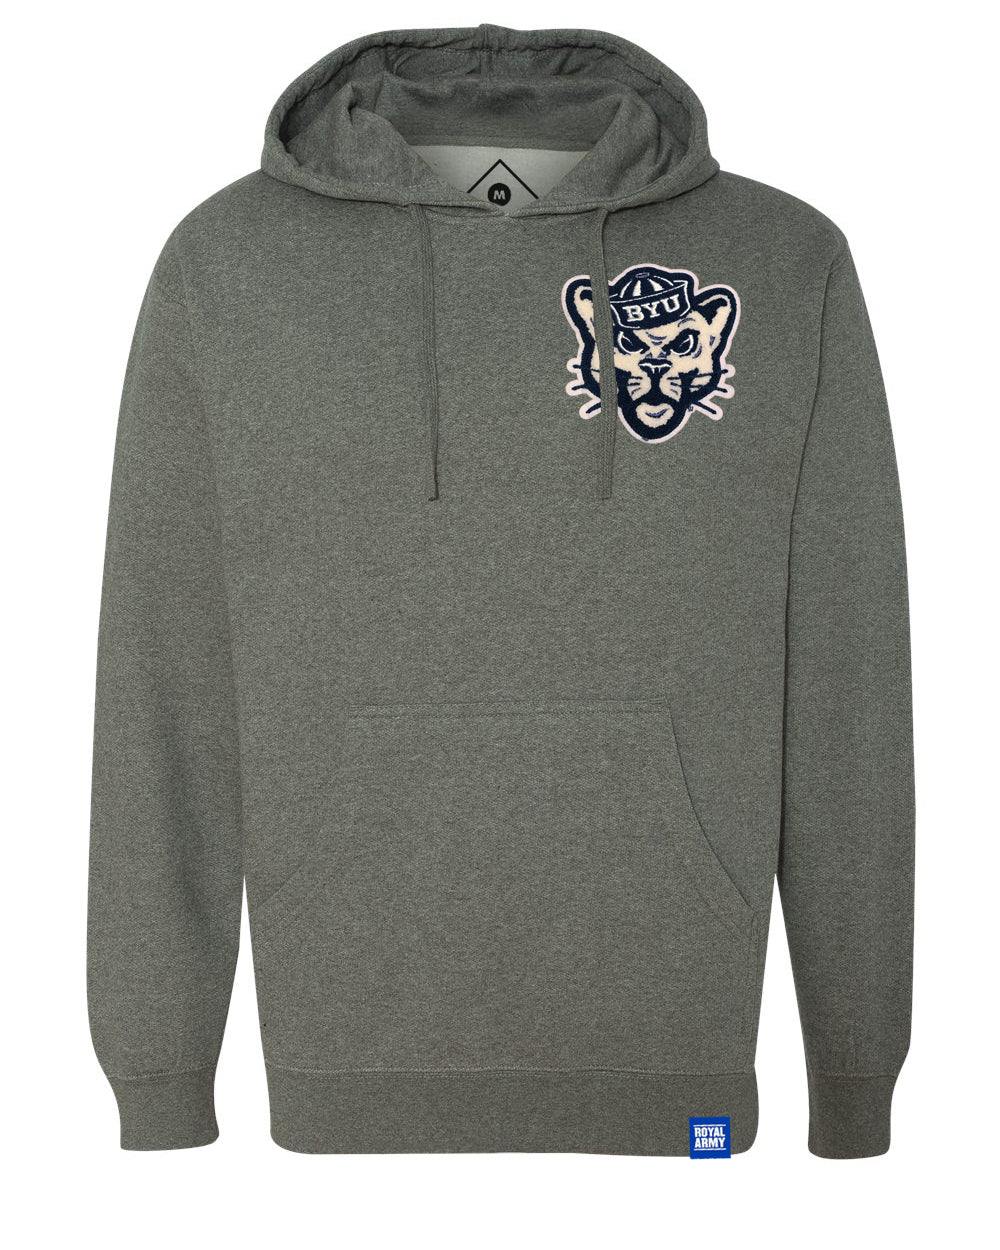 Gun Metal Grey Heather Fleece Hoodie with Chenille BYU Sailor Cougar Patch